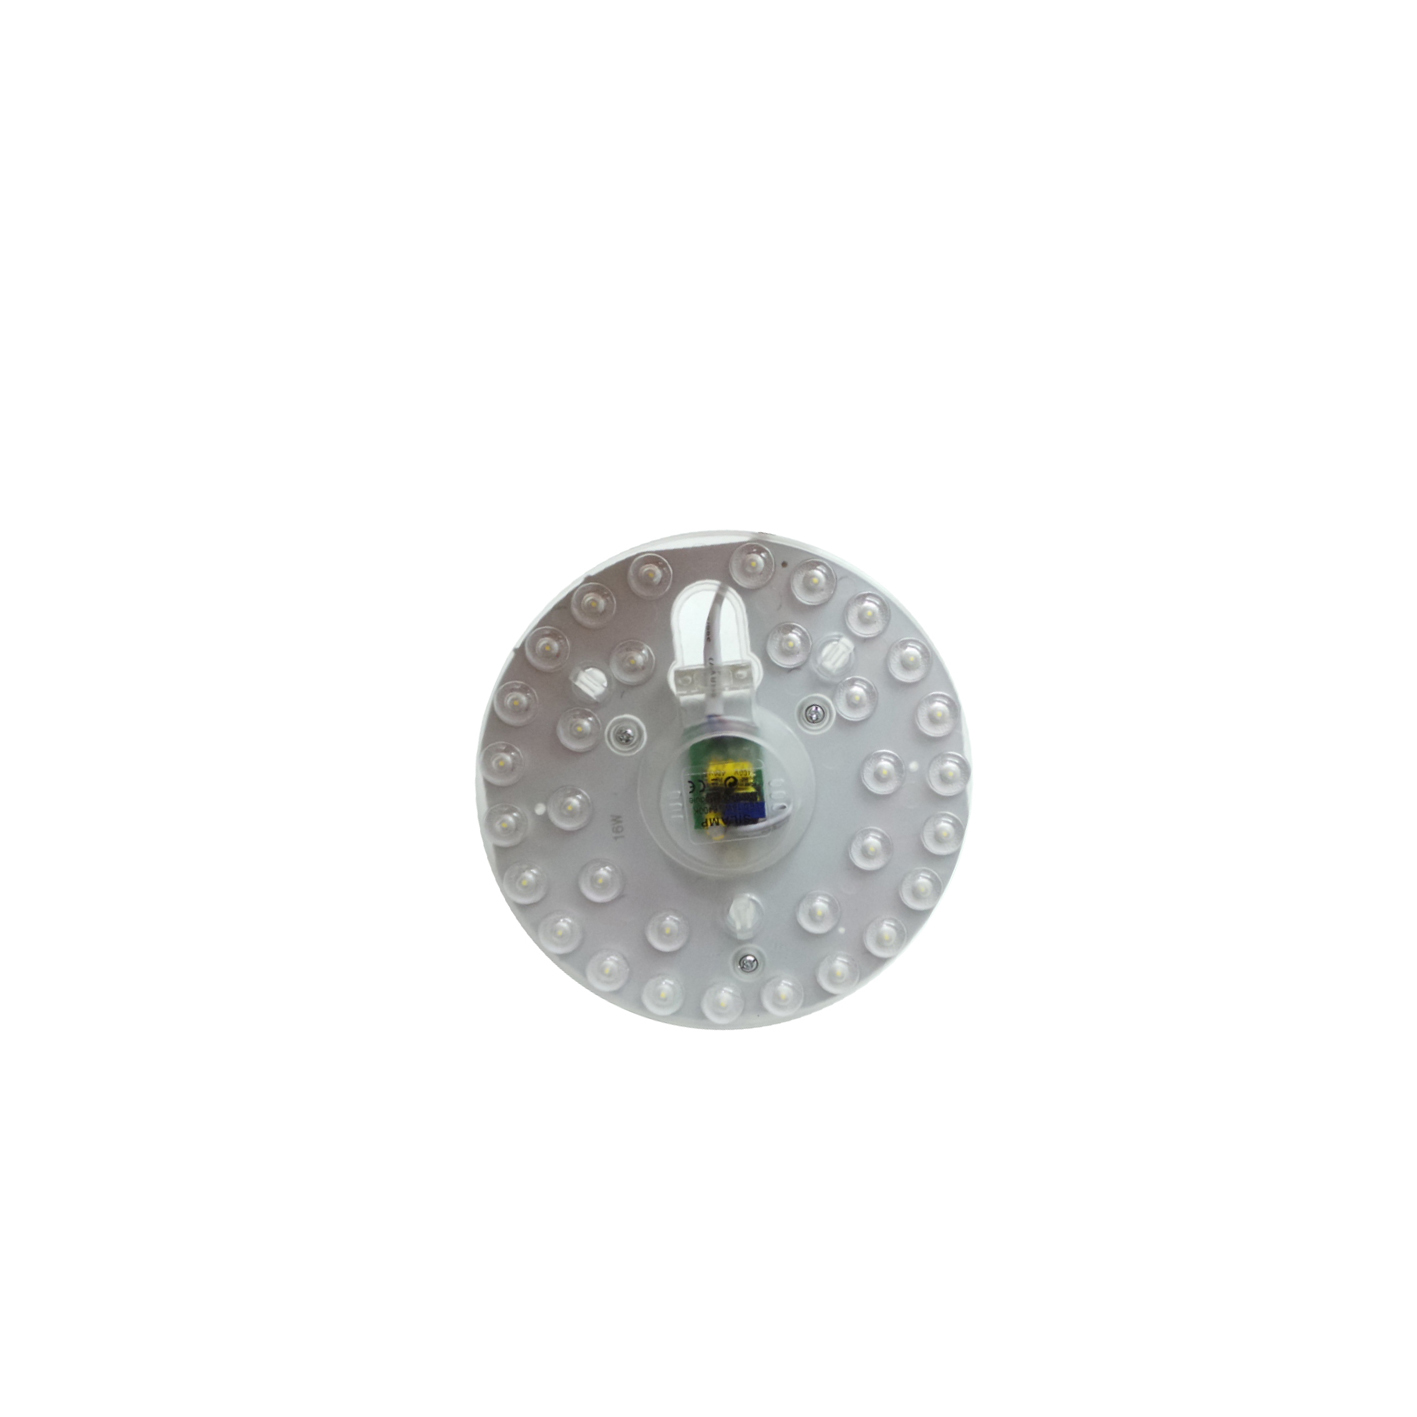 Led Neon Plate Disc Ring Ceiling light Circular T9 G10q 12w